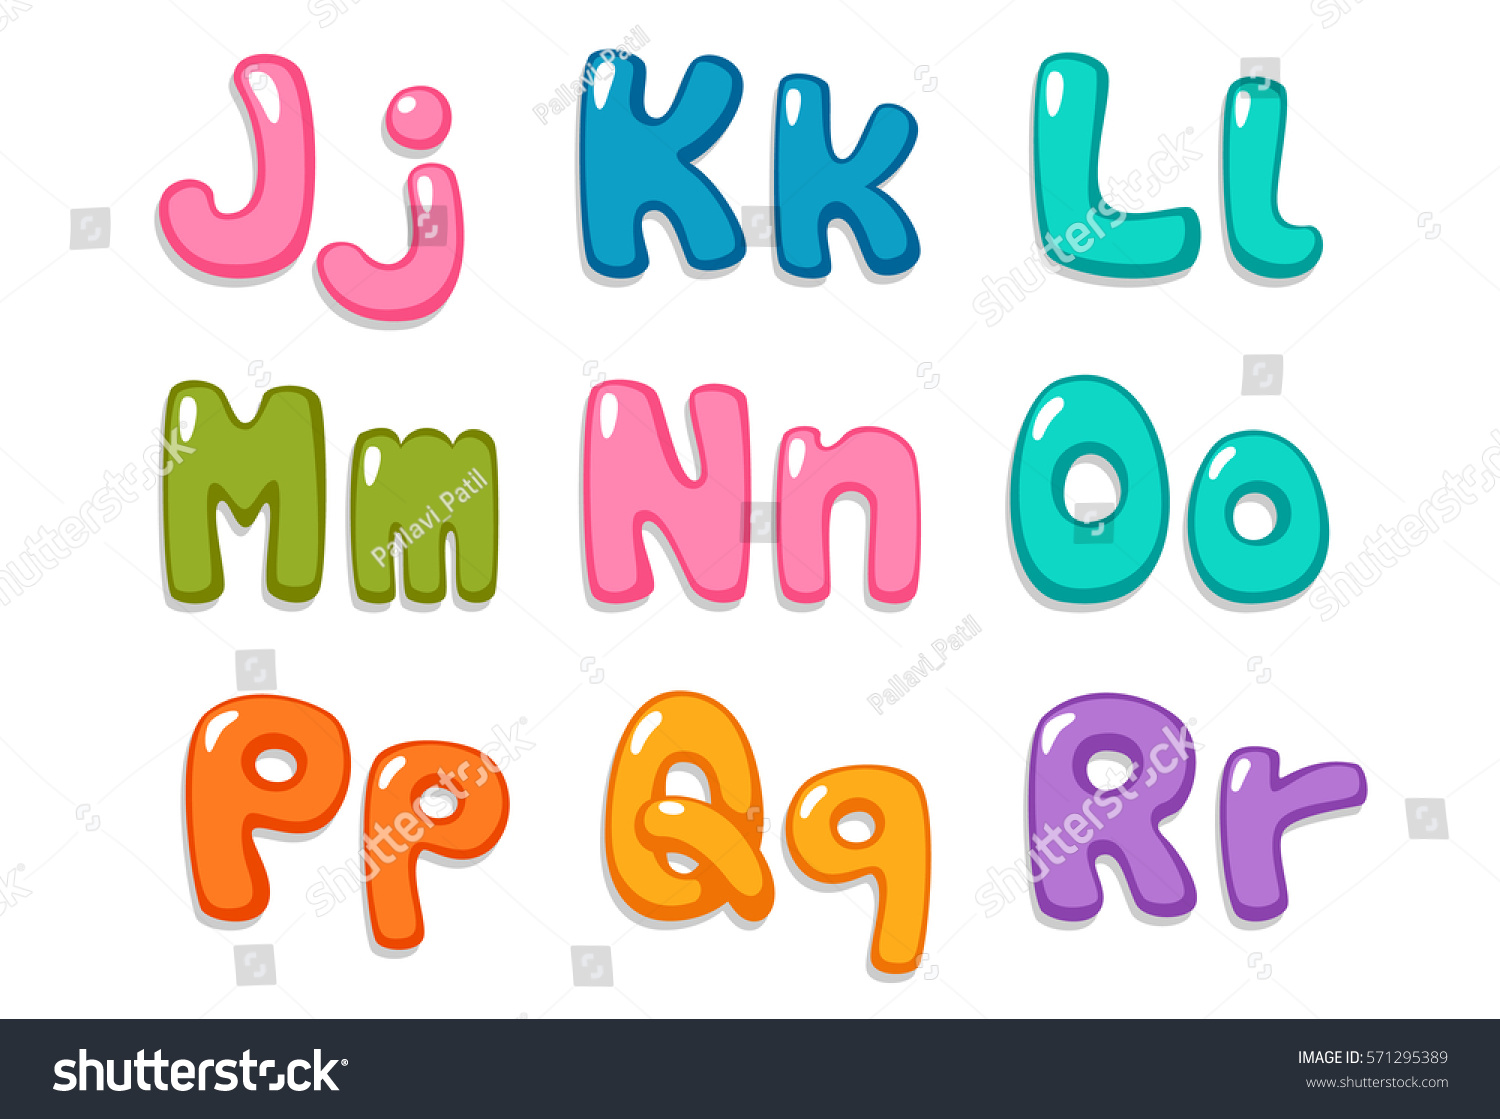 Candy Color Kid Font Part 2 Stock Vector 571295389 - Shutterstock